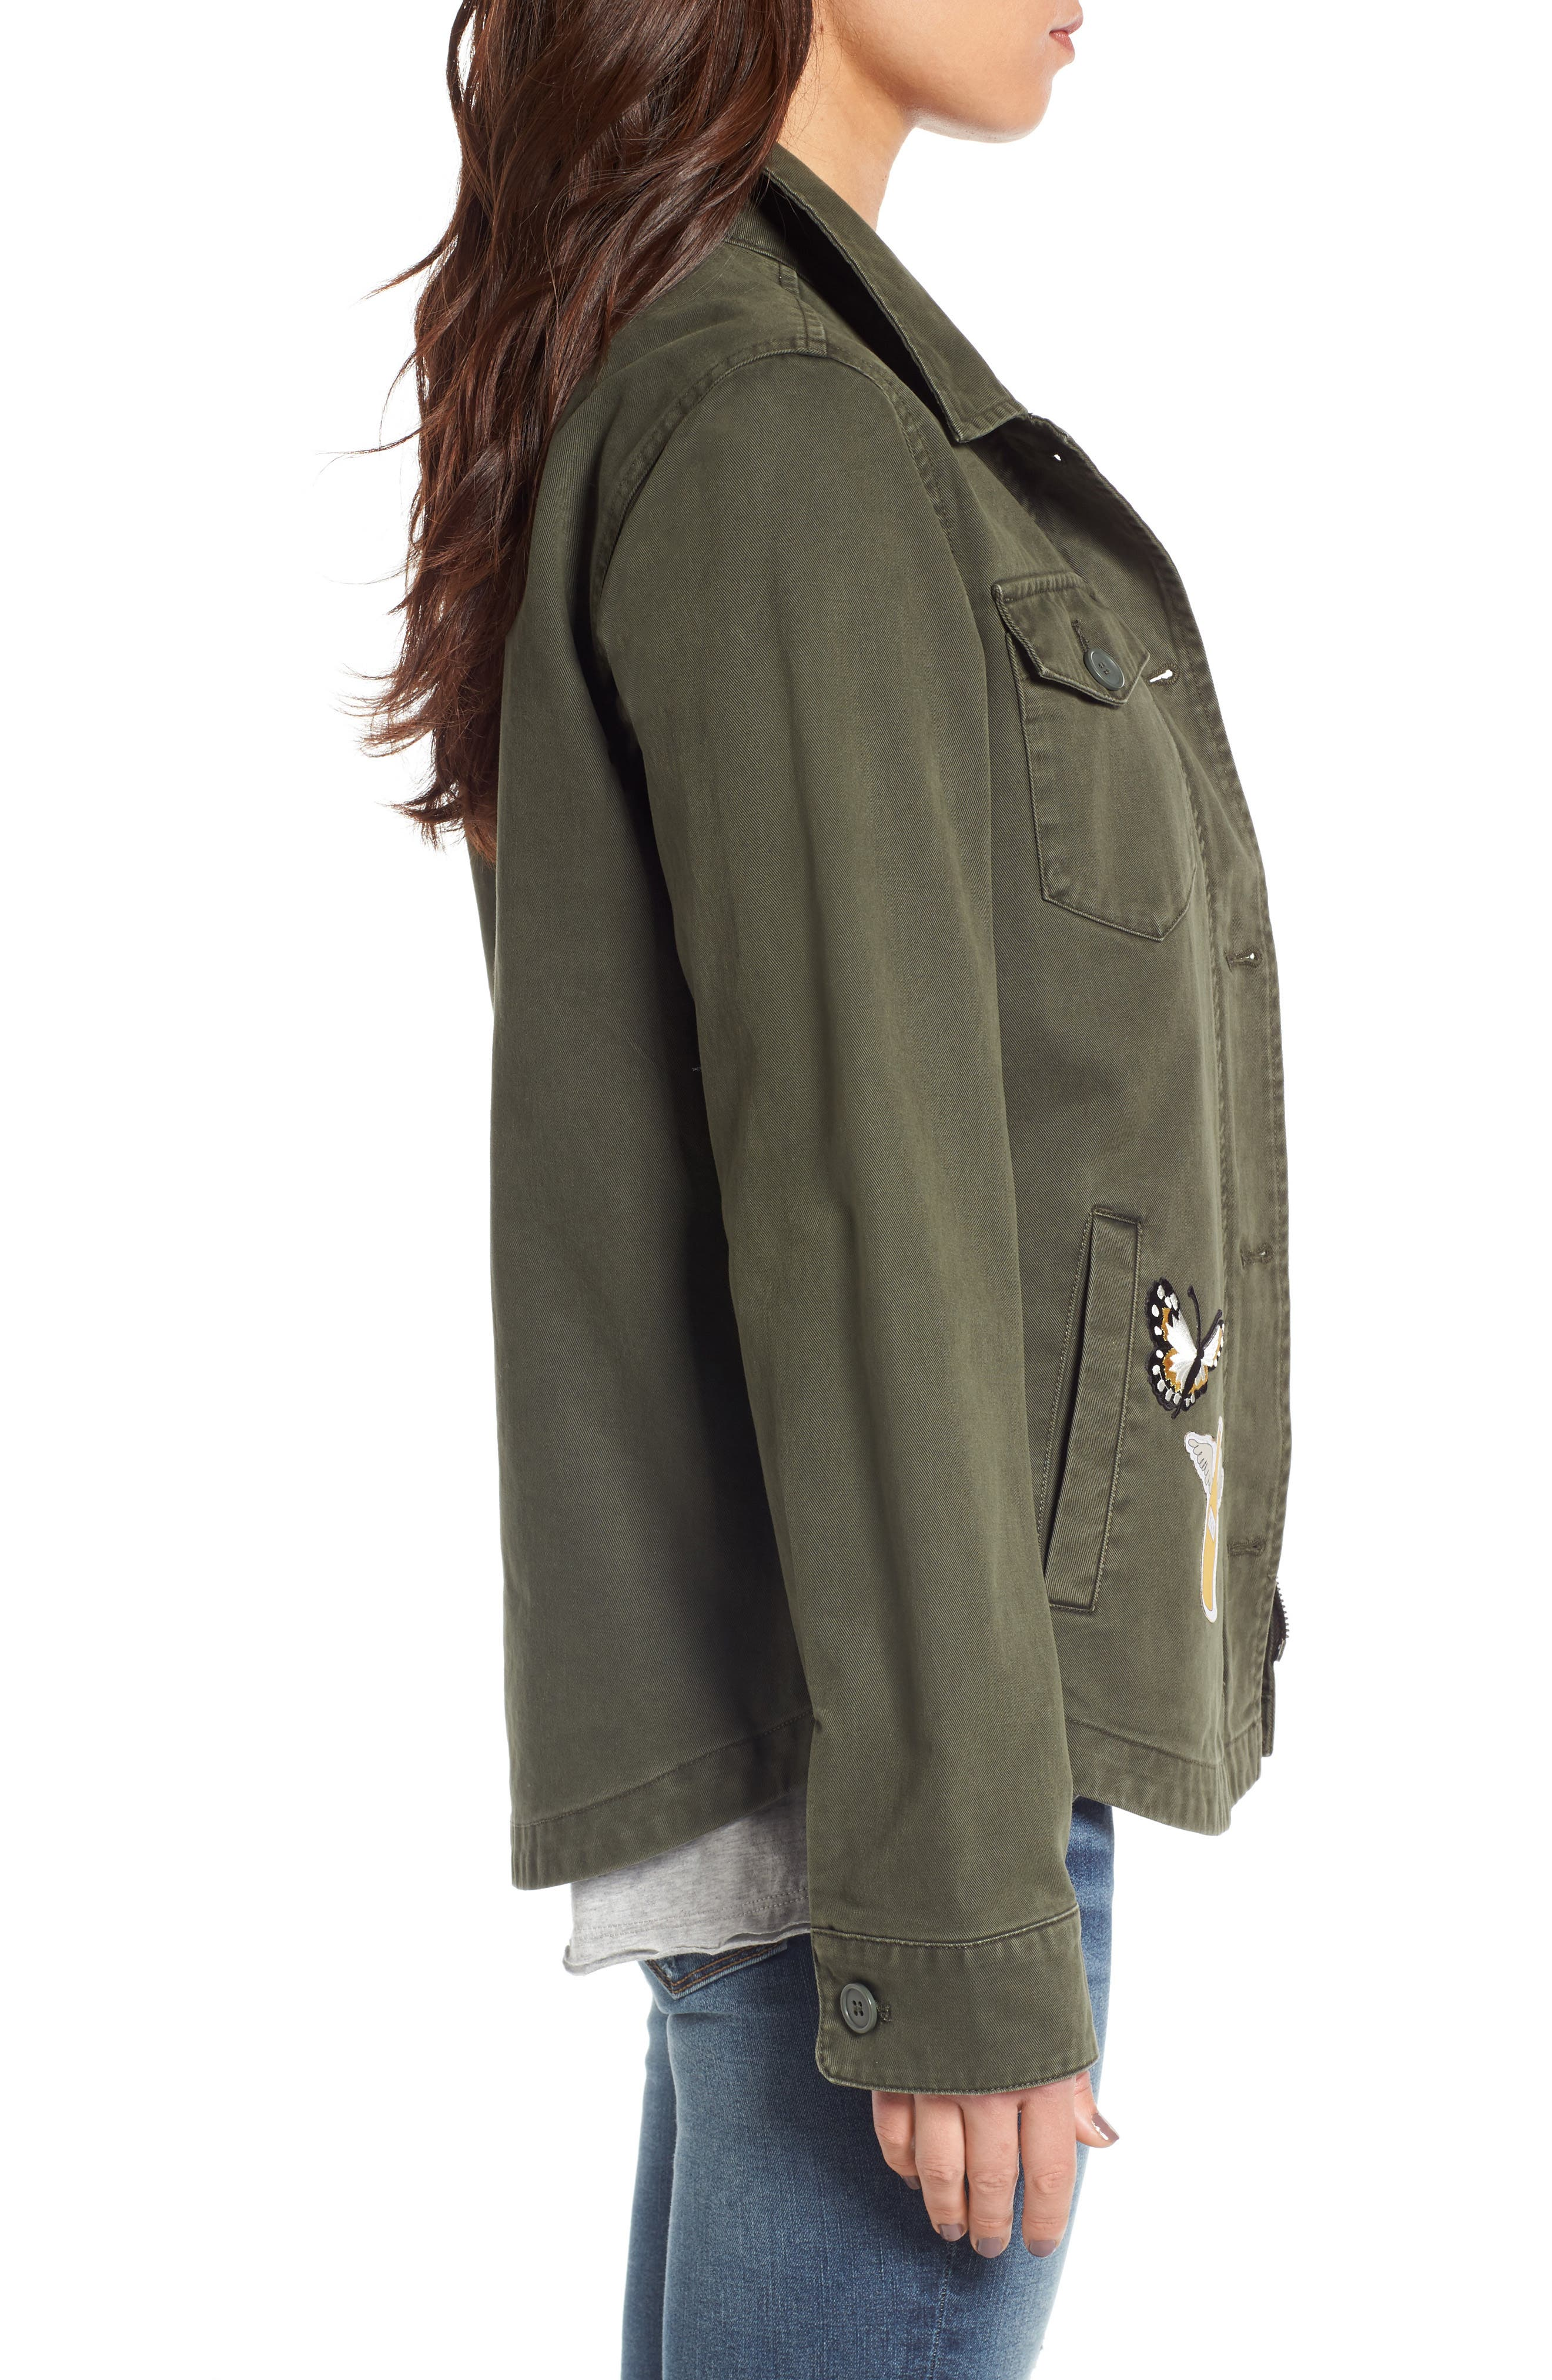 Cargo Jacket with Patches,                             Alternate thumbnail 3, color,                             Olive